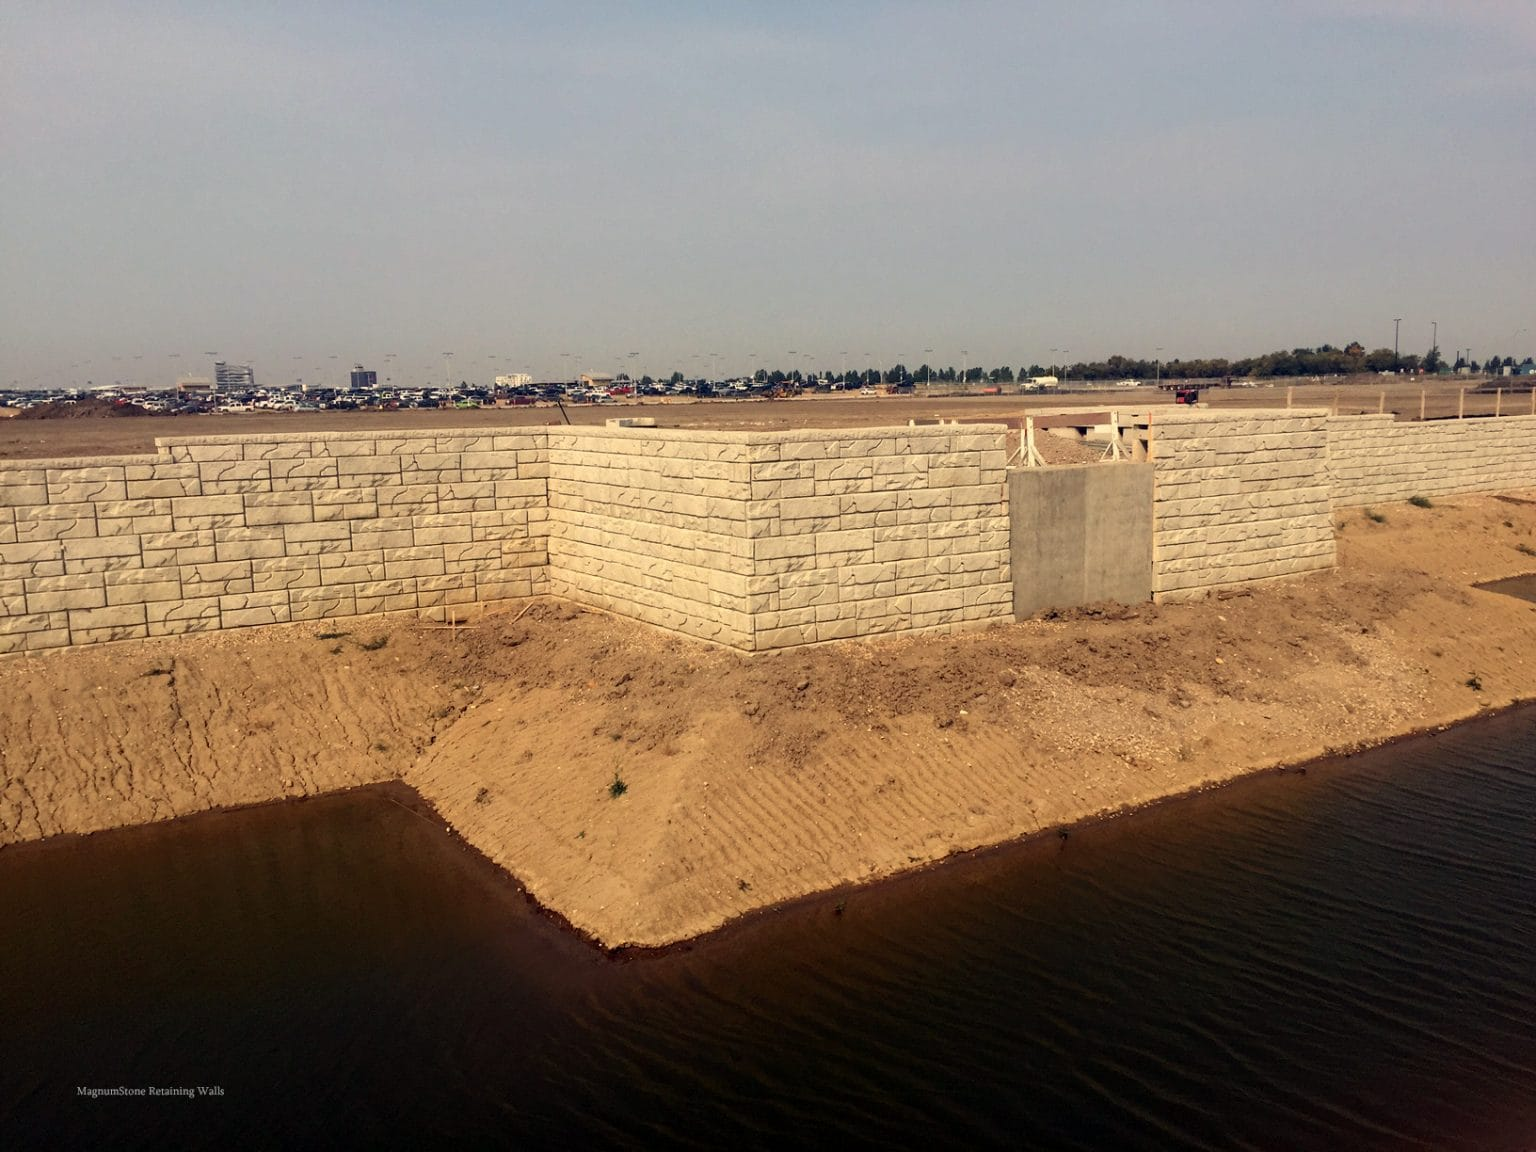 MagnumStone Geogrid Retaining Wall Construction